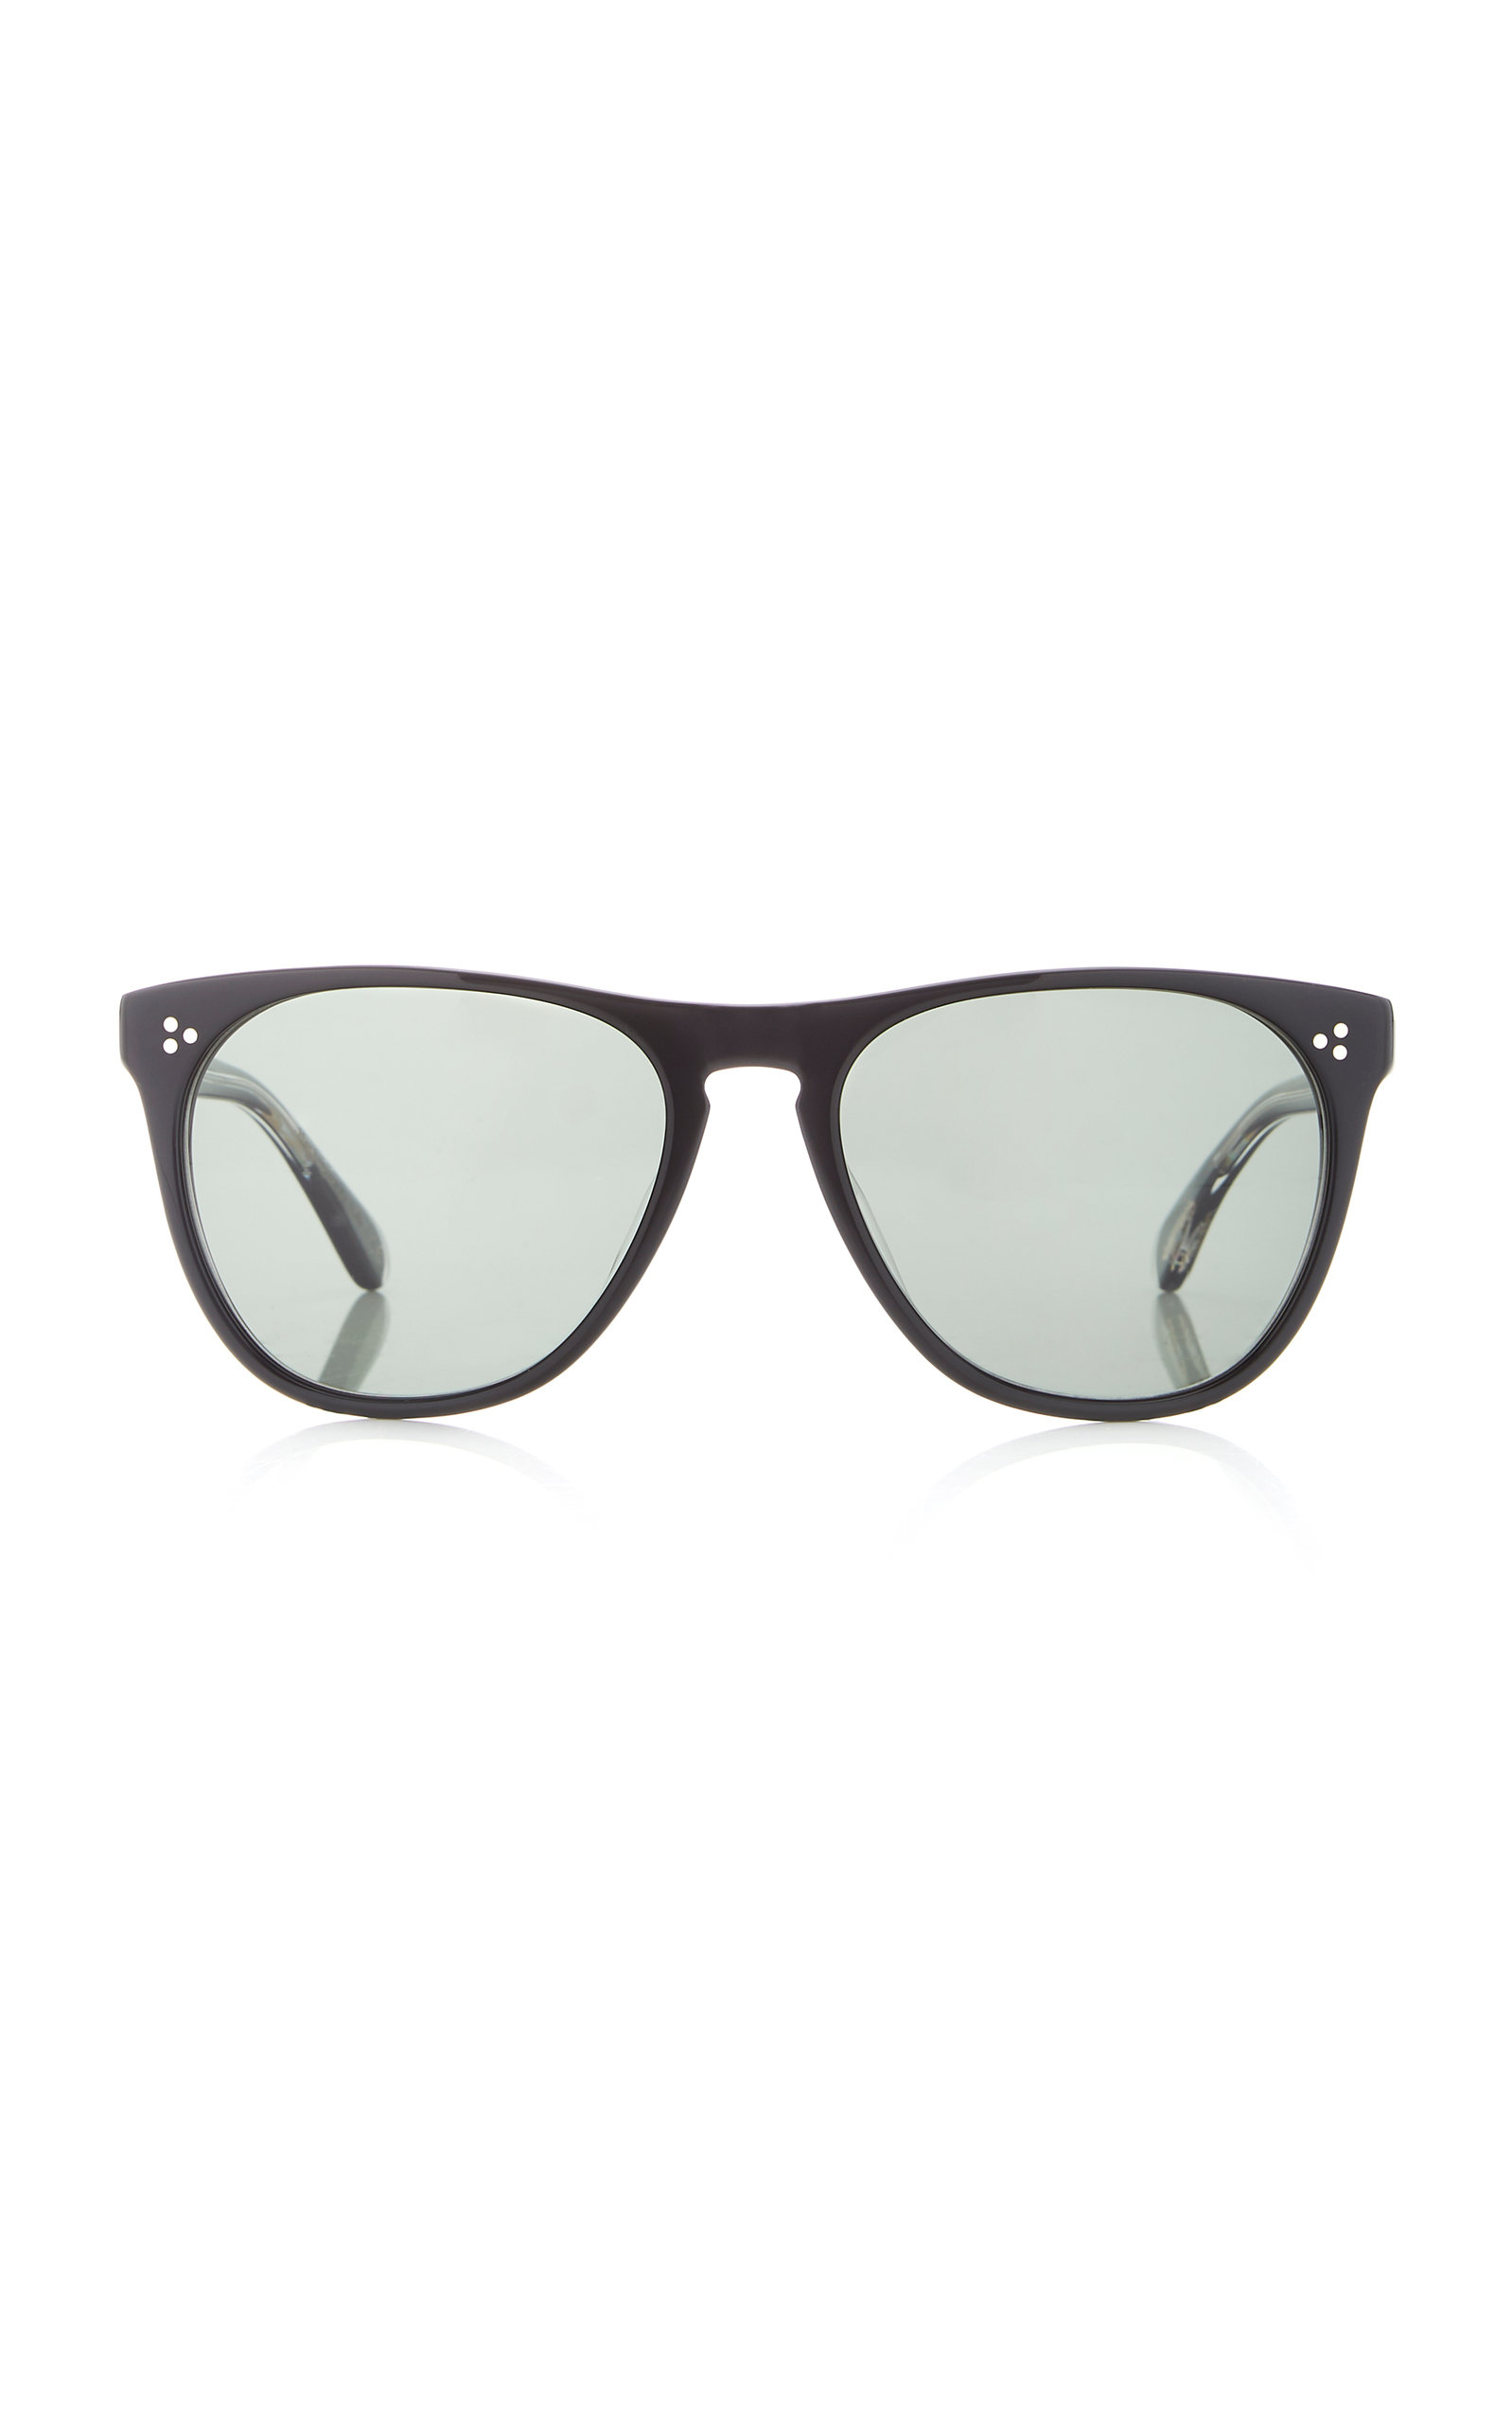 a3d398d8c31 Daddy B. Square Sunglasses by Oliver Peoples